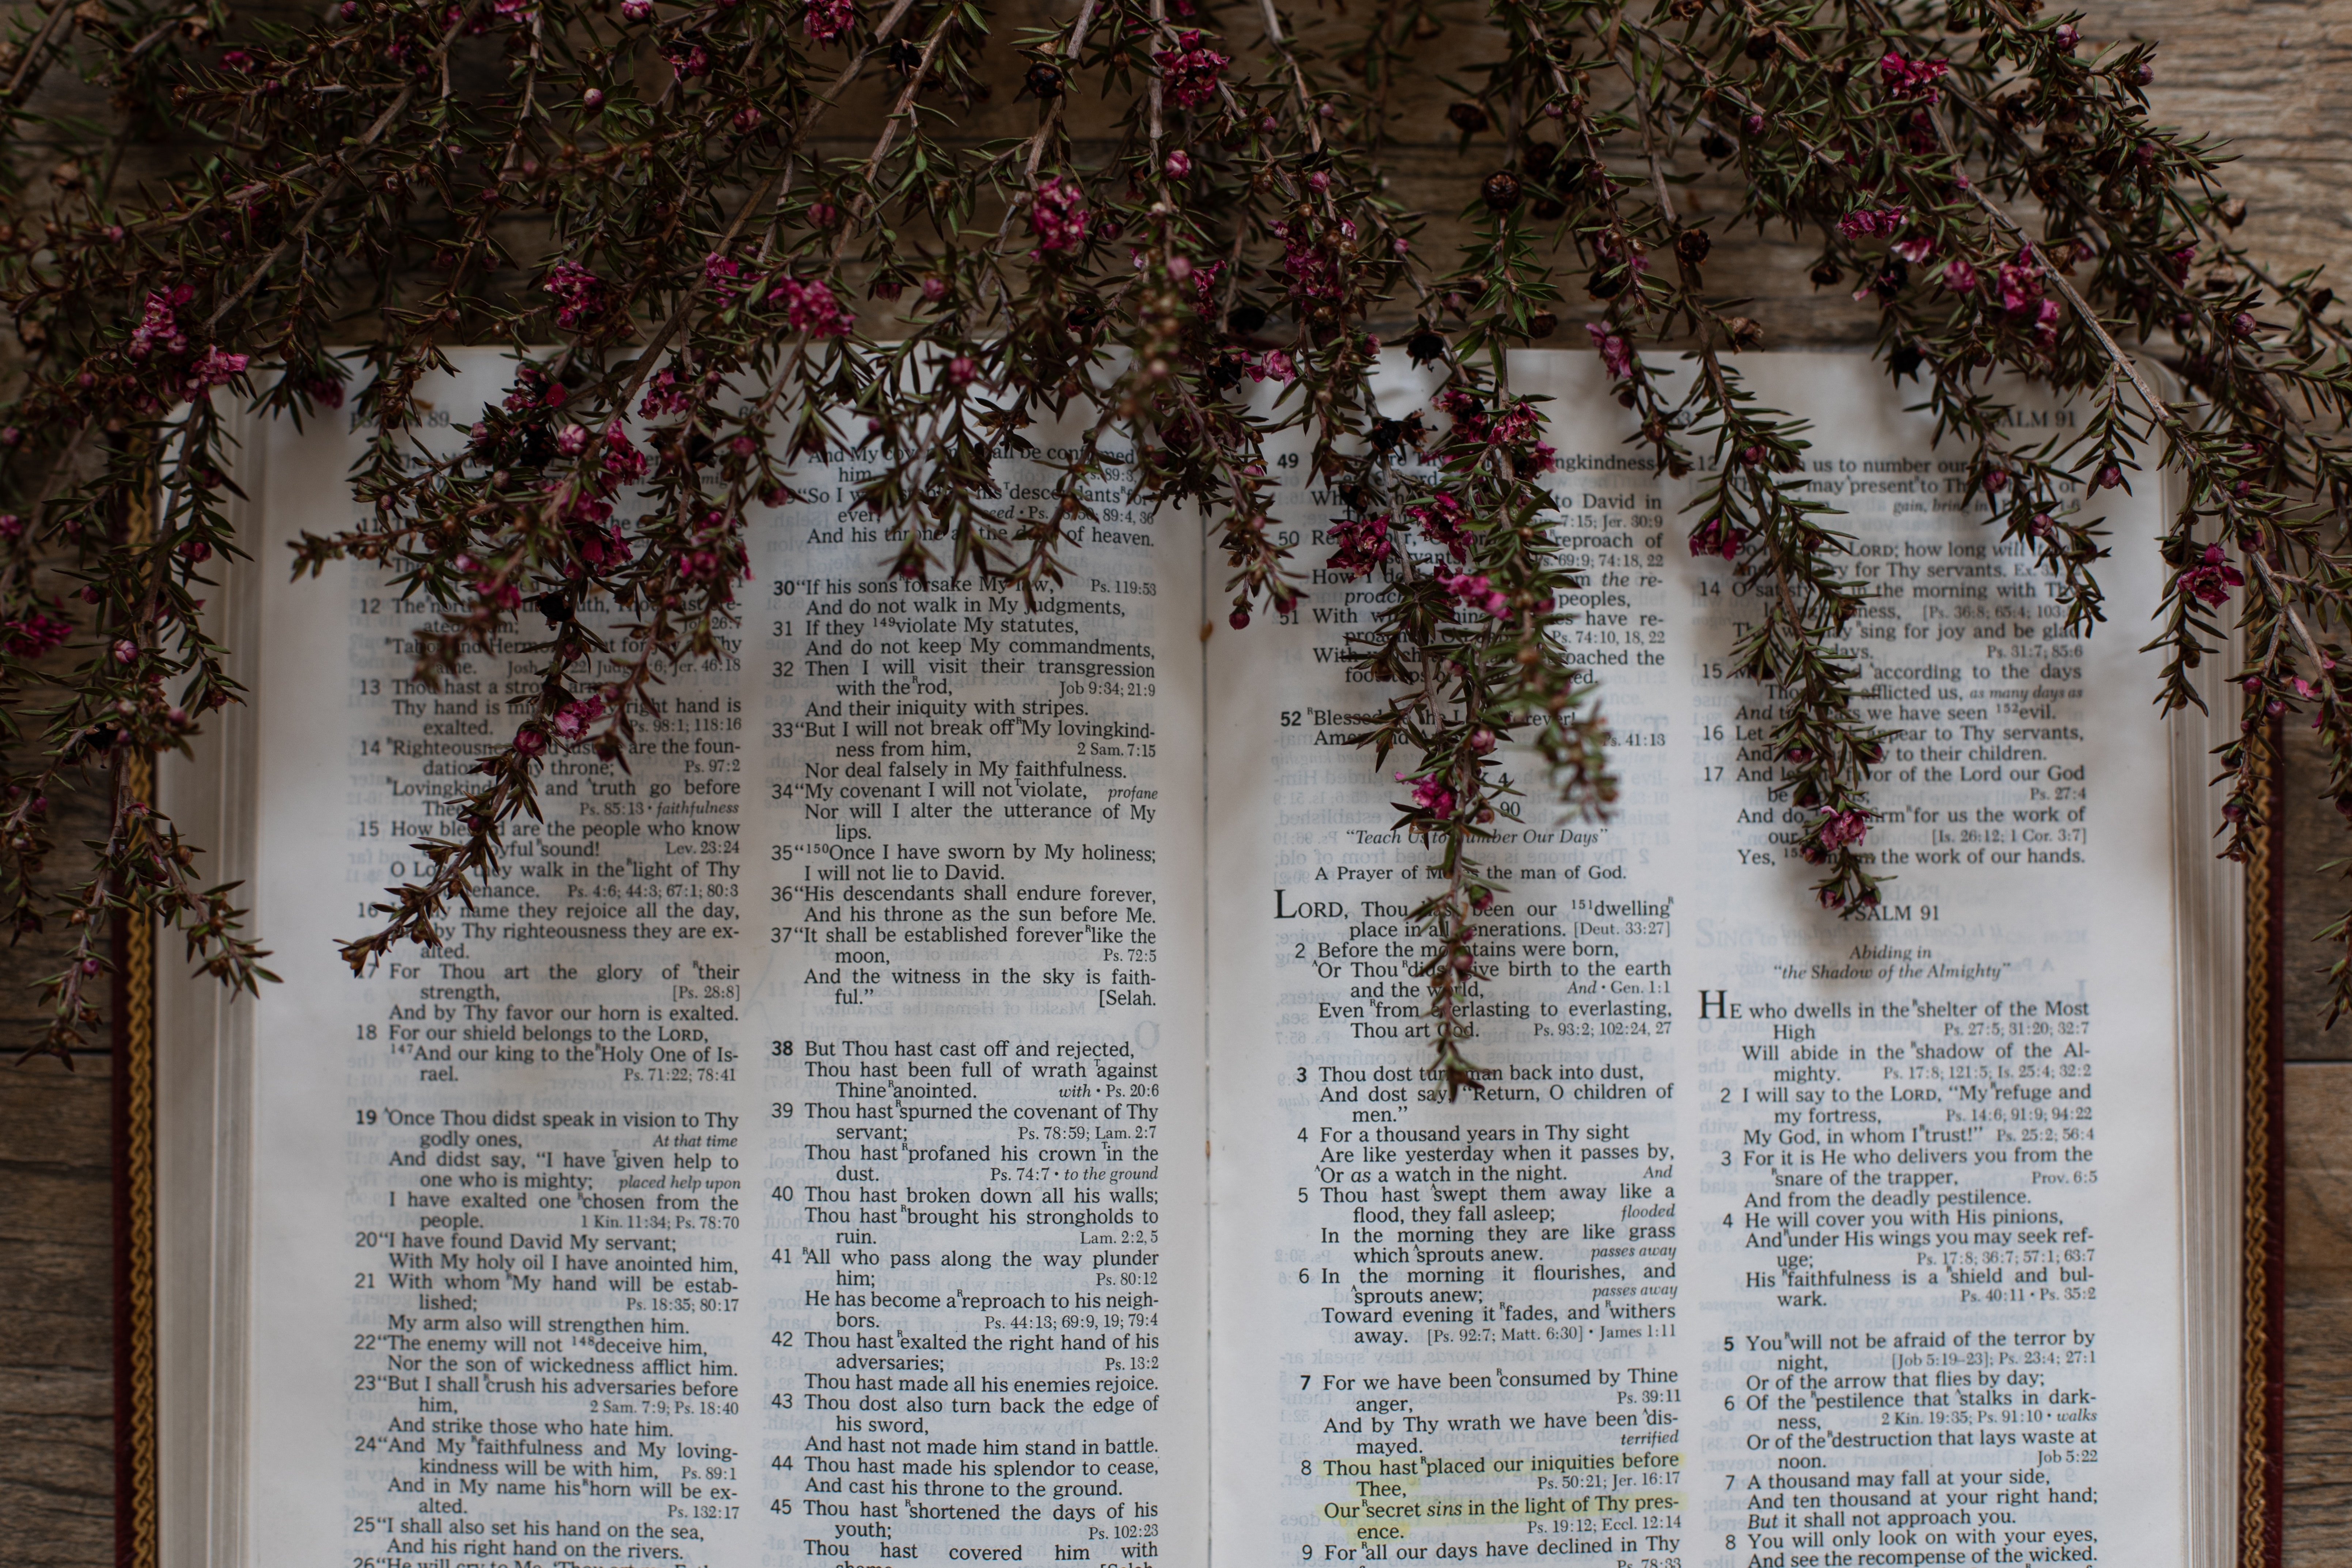 Photo of an open Bible with dried flowers laid on top.